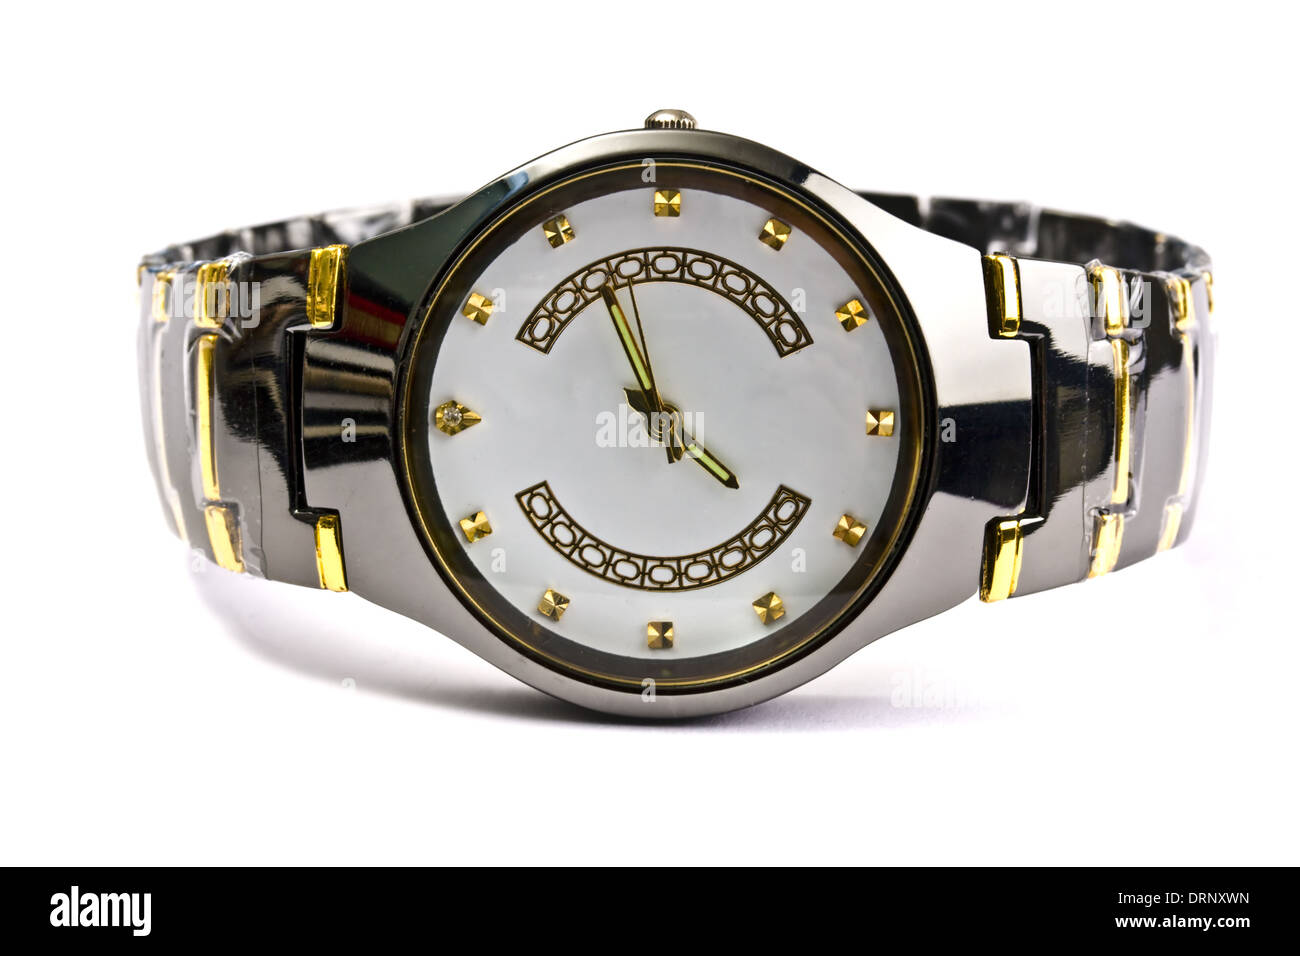 Wristwatch - Stock Image